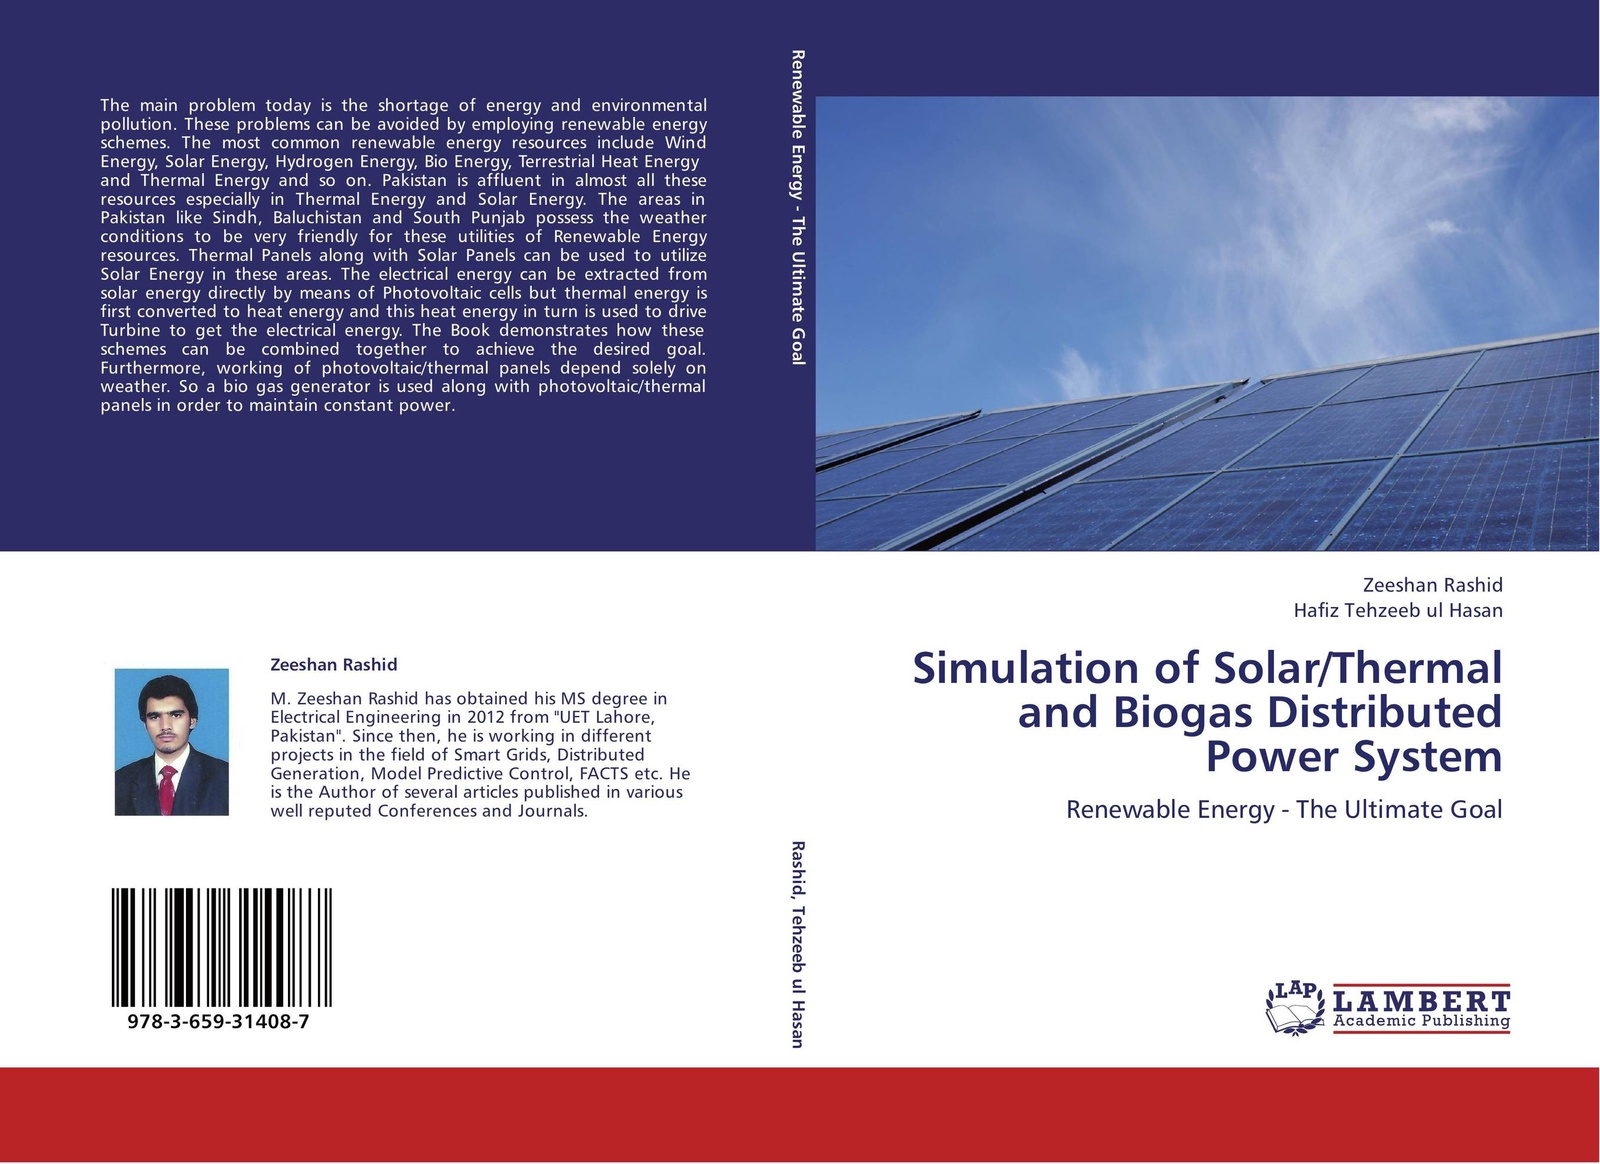 Zeeshan Rashid and Hafiz Tehzeeb ul Hasan Simulation of Solar/Thermal Biogas Distributed Power System